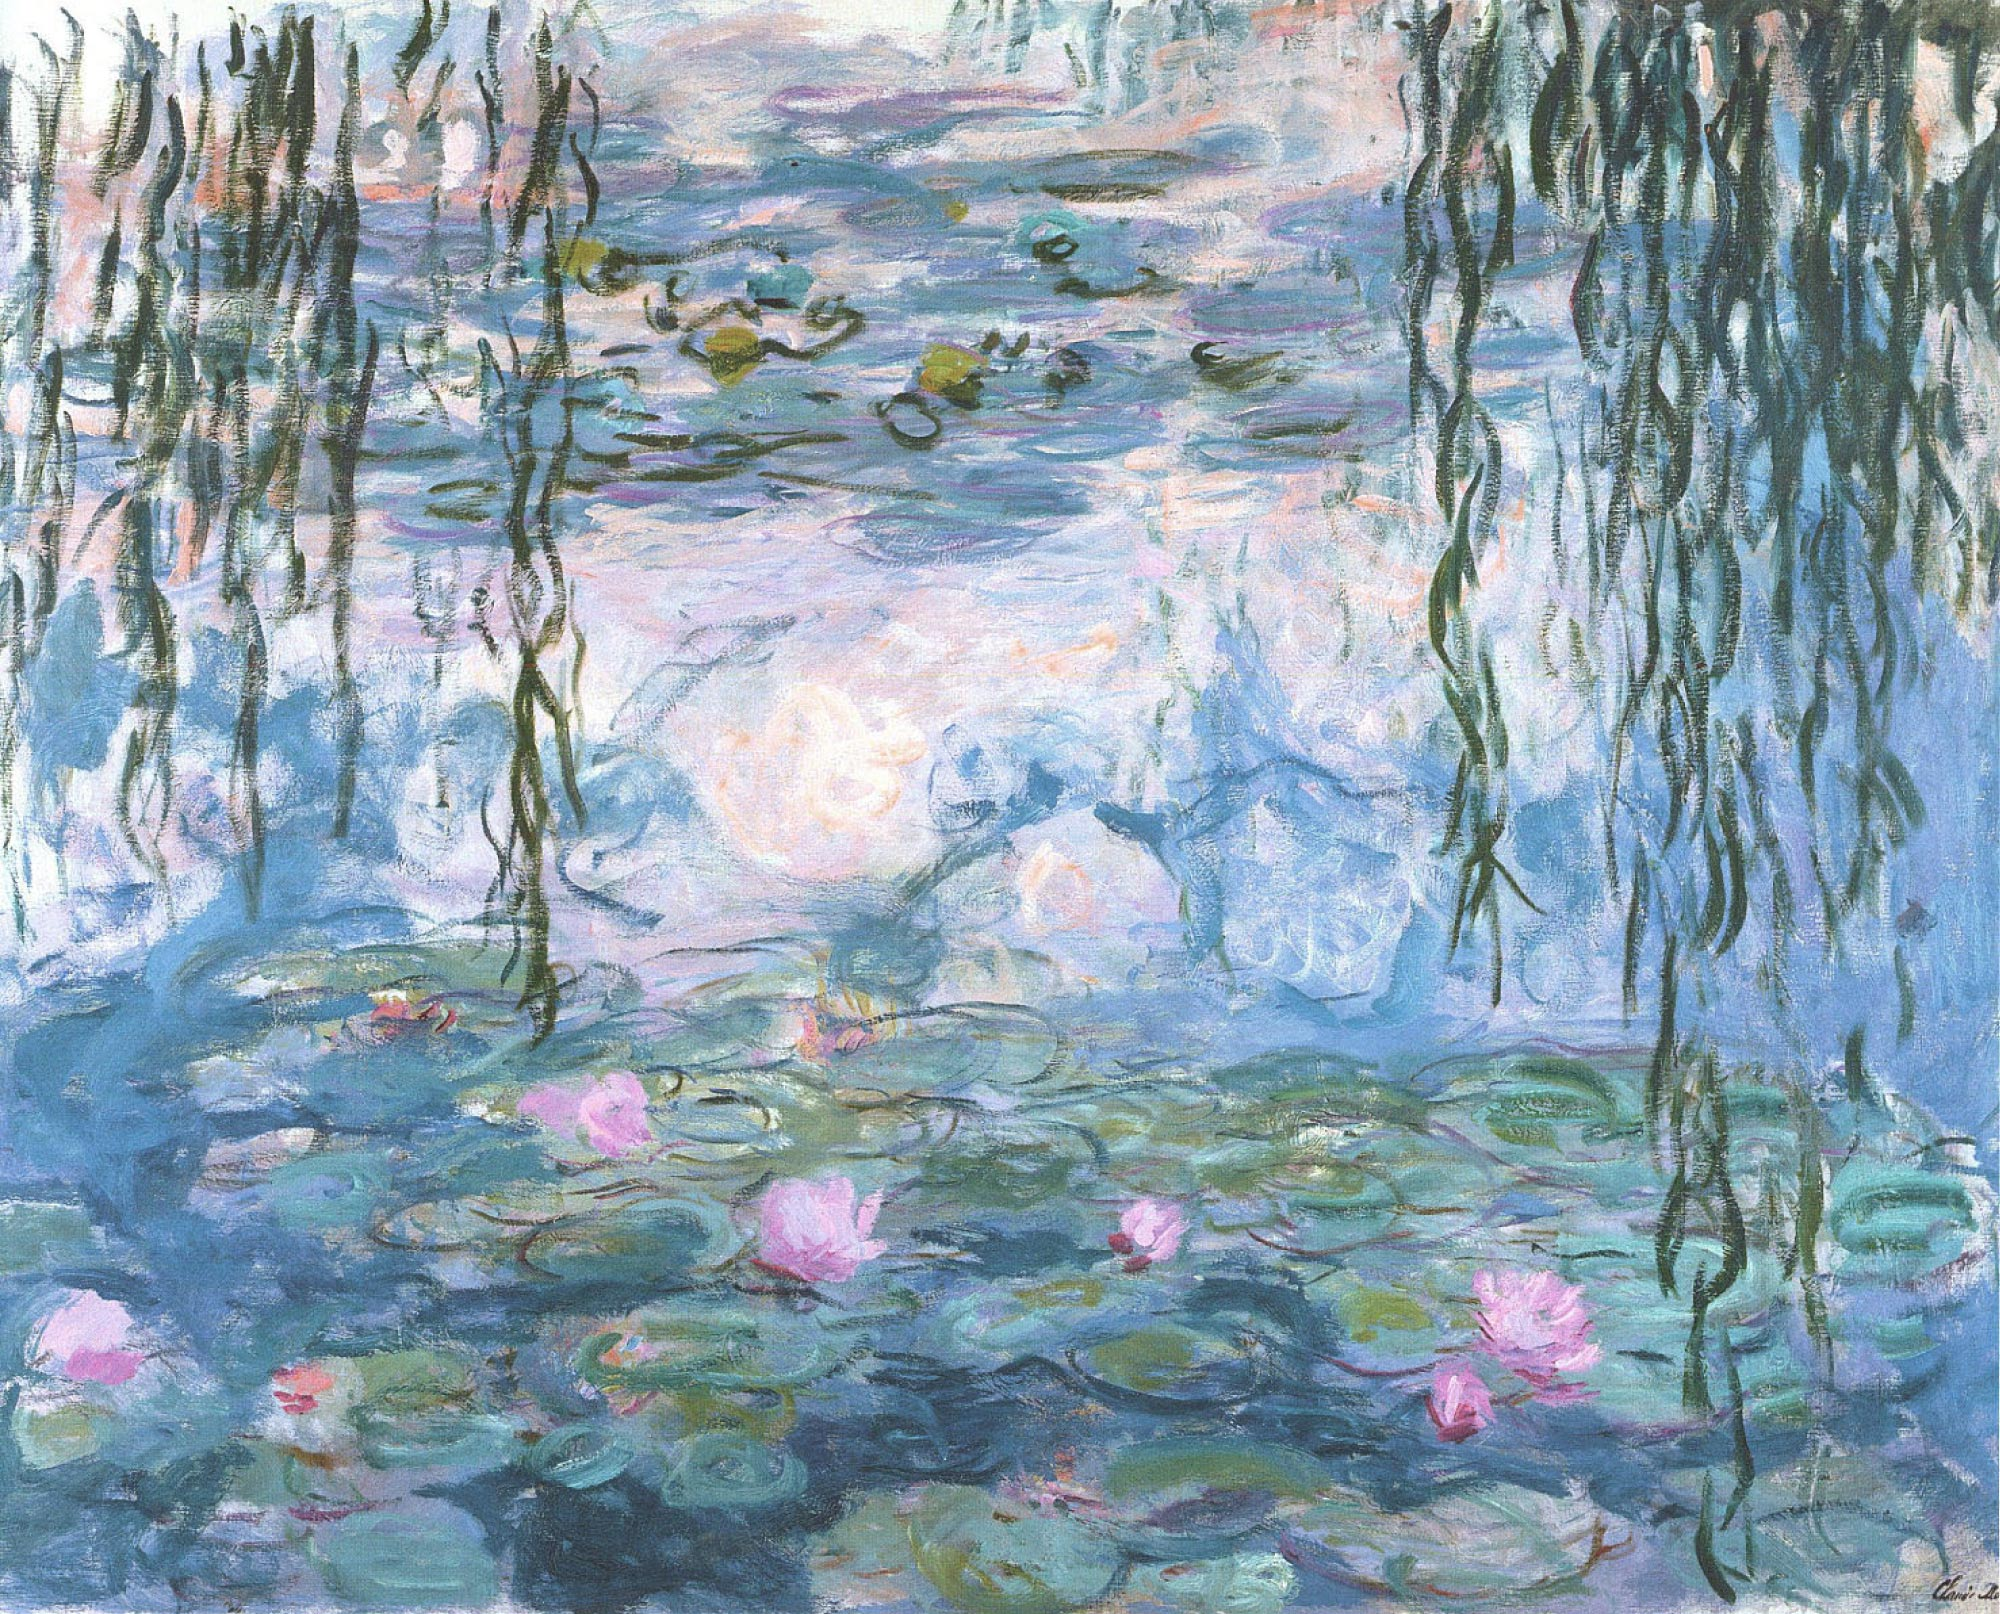 2000x1614 Interior Inspiration Monet's Water Lilies - Water Lilies Painting